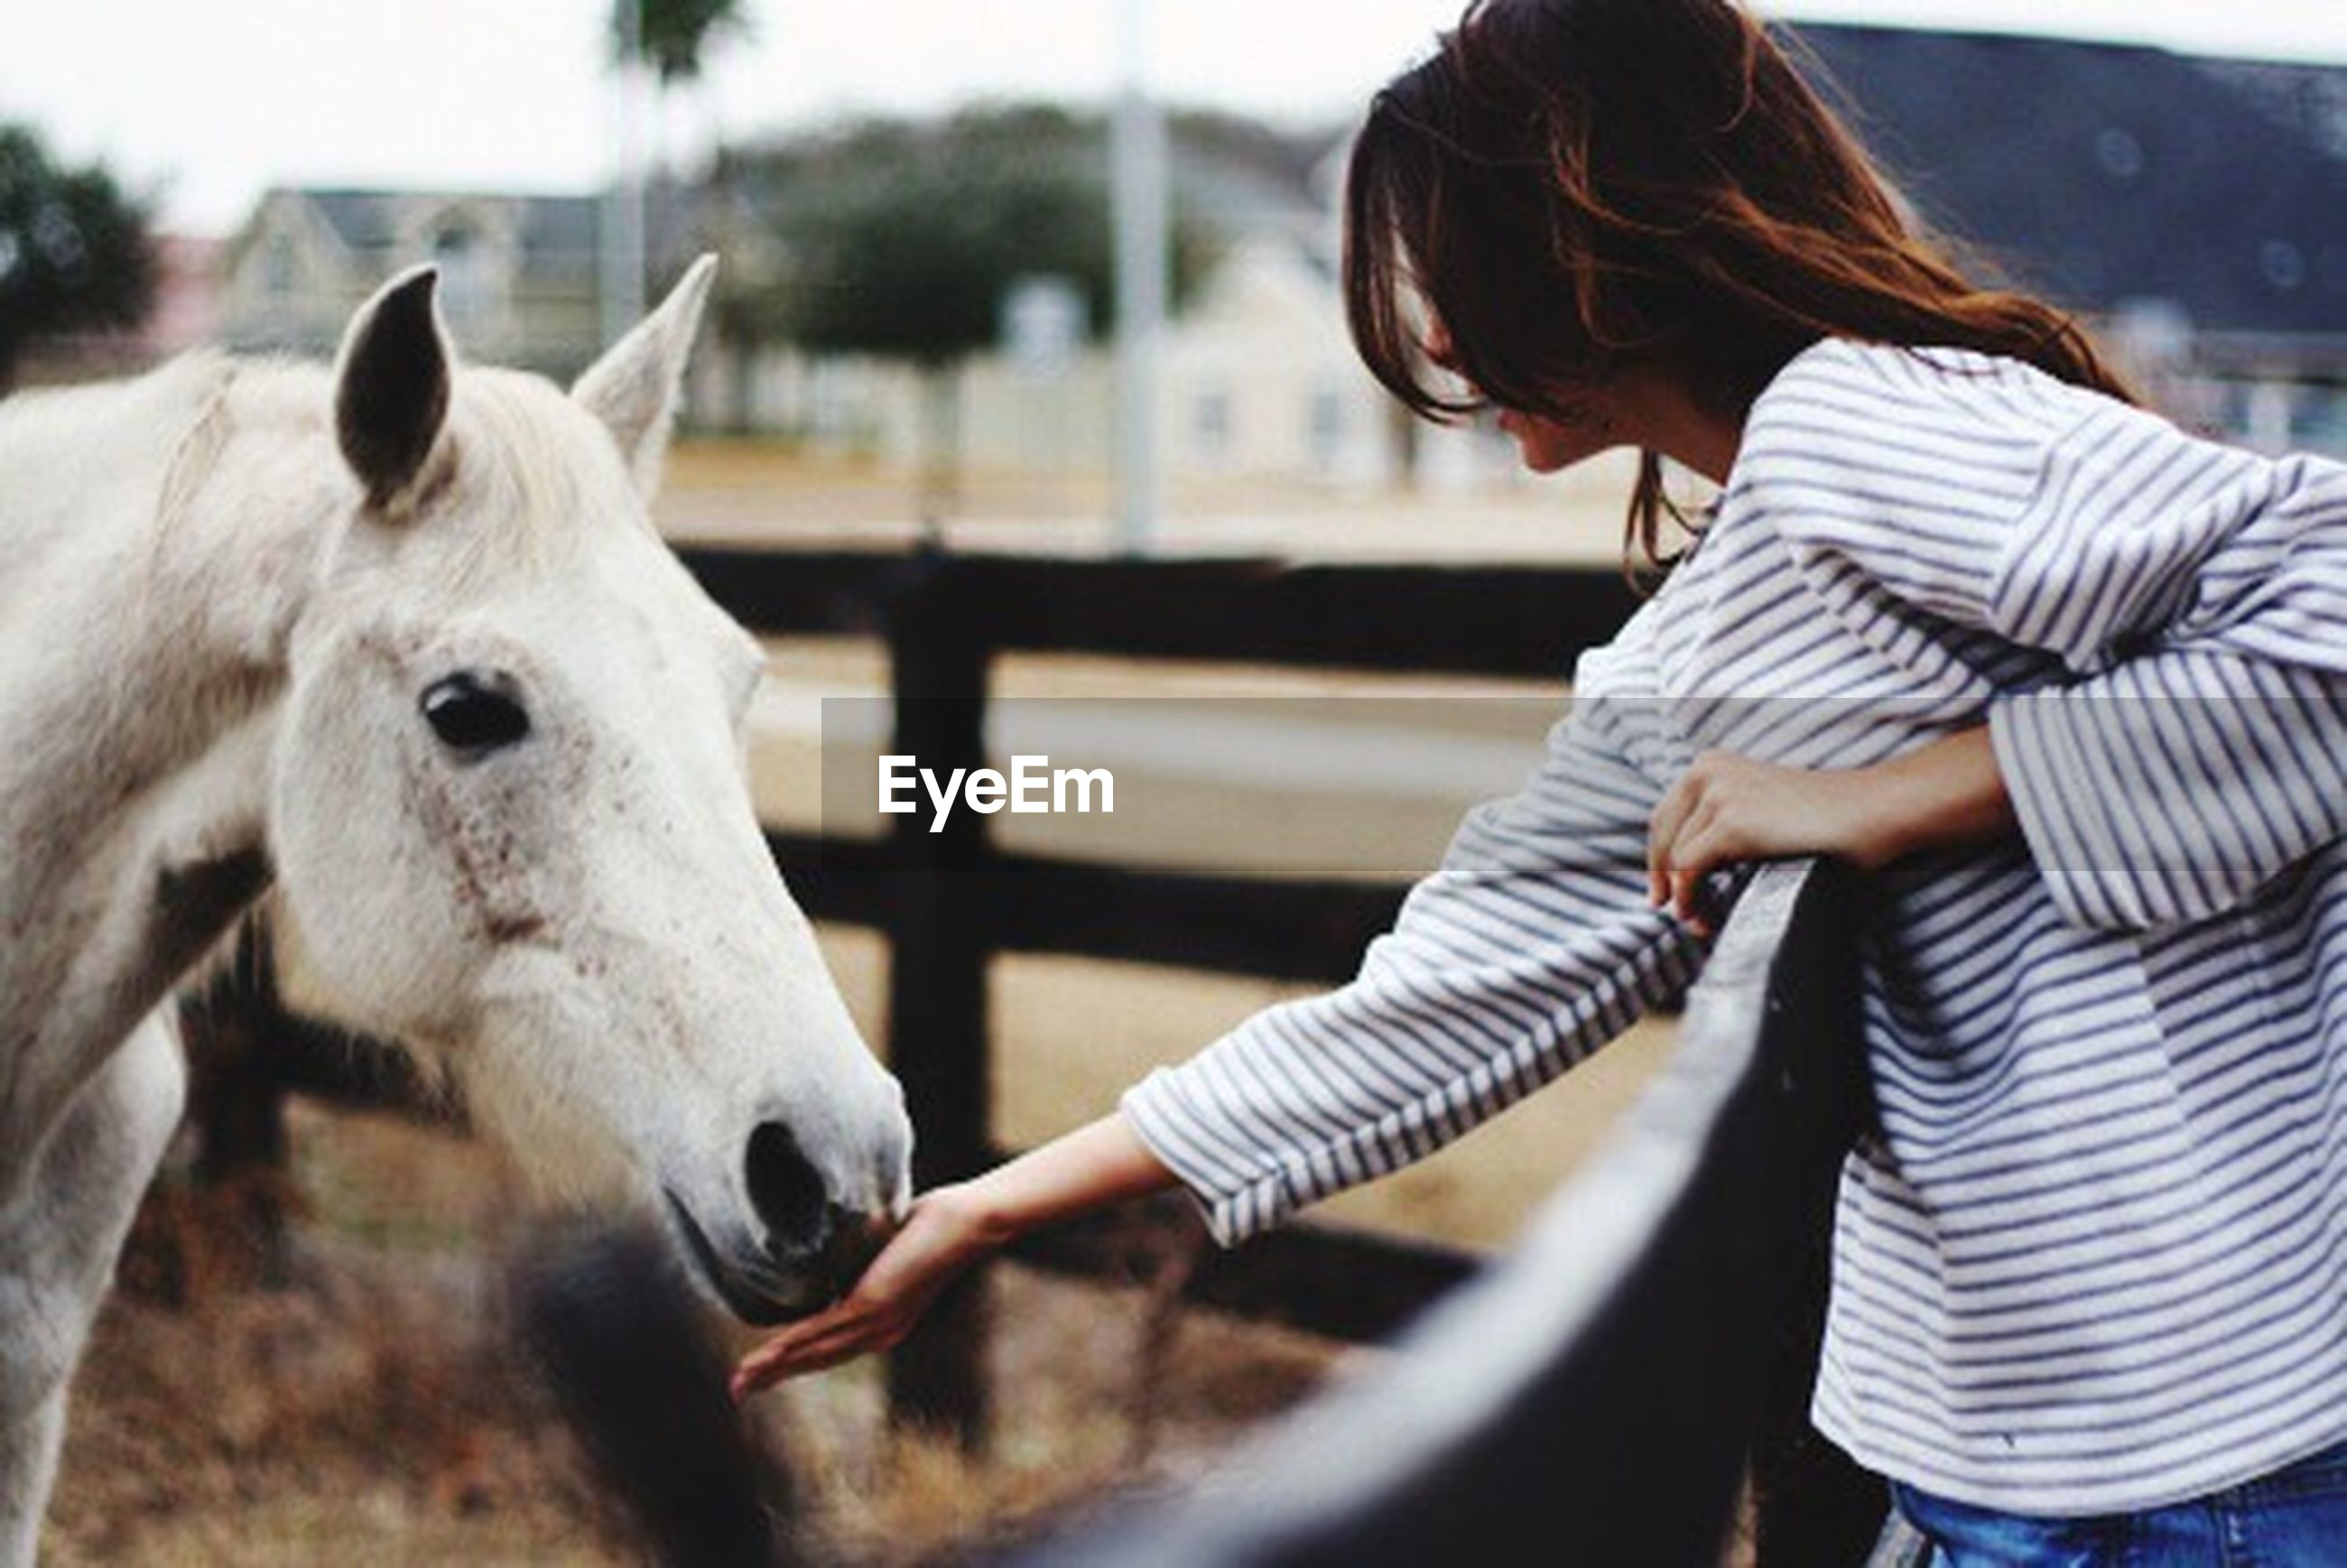 horse, domestic animals, livestock, women, one animal, one person, adults only, females, adult, rural scene, people, bonding, close-up, only women, one woman only, sky, outdoors, human hand, day, mammal, young adult, human body part